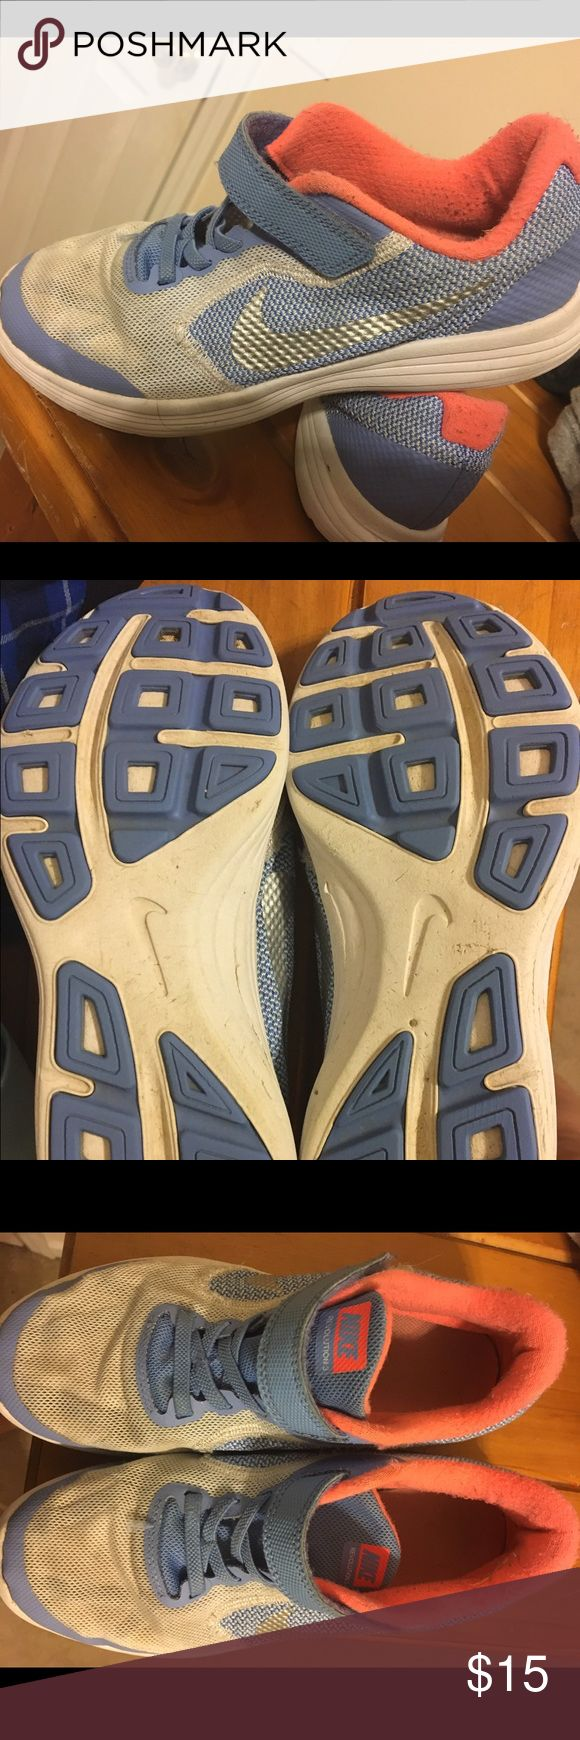 Nike girls tennis shoes Nike girls tennis shoes, good used condition, bottoms look great! These are great for upcoming spring! Minor pilling inside. Nike Shoes Sneakers